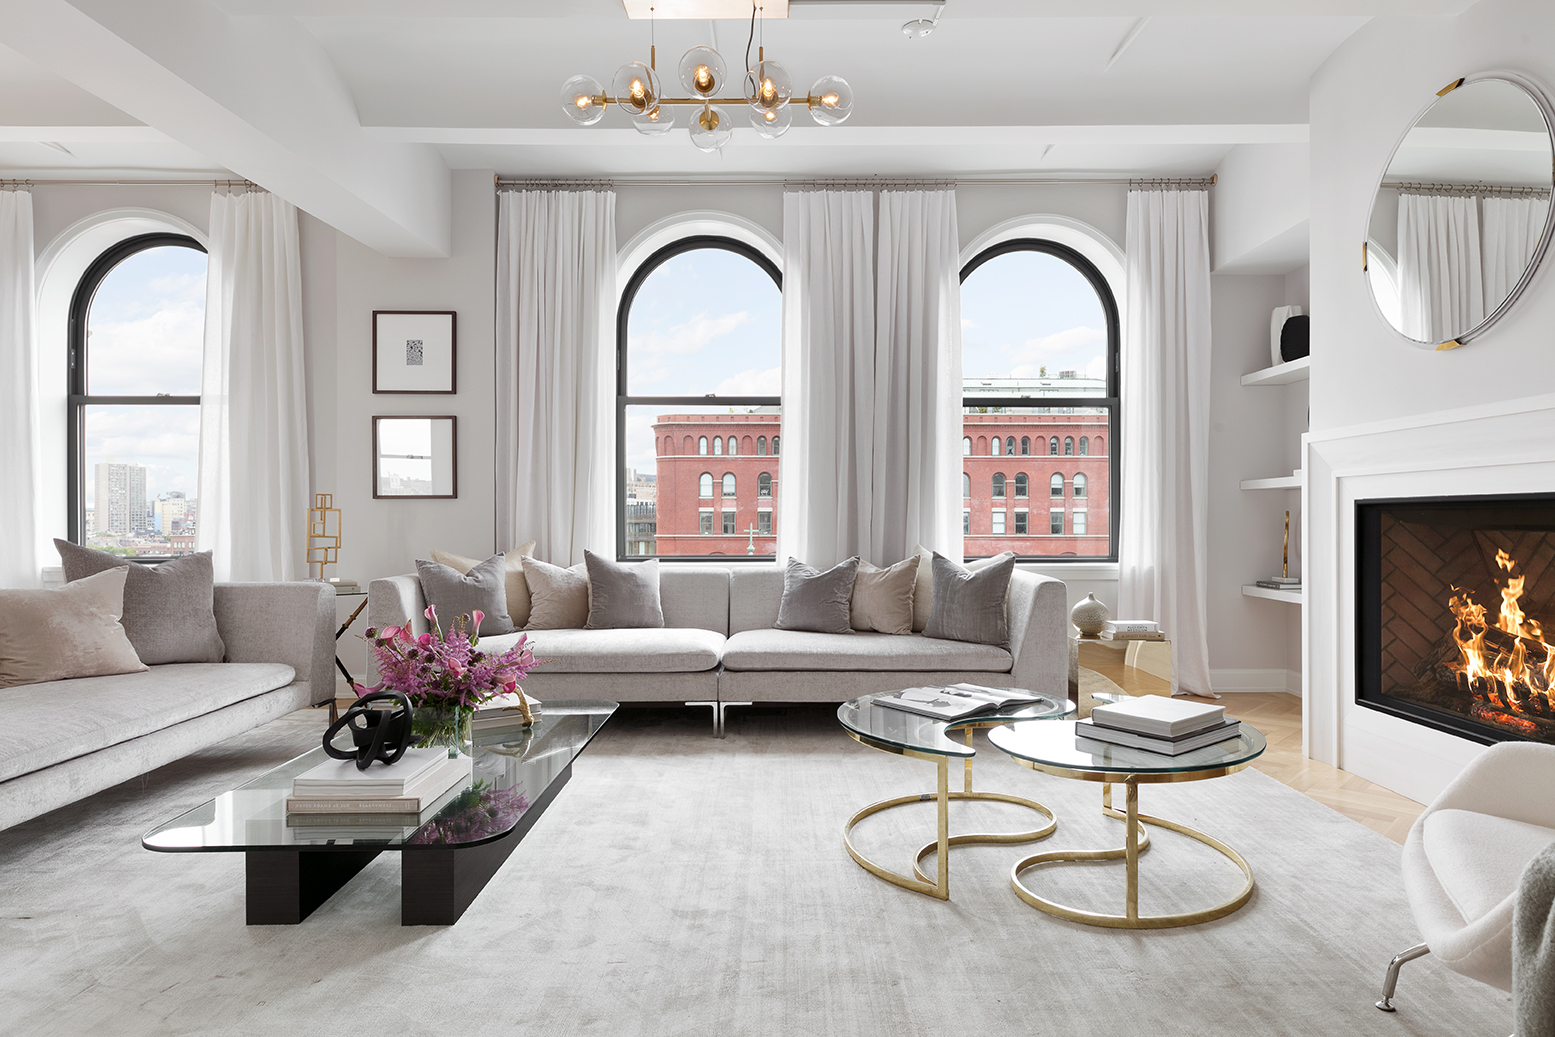 IMMEDIATE OCCUPANCY  With a layout that is both elegant and casual, paired with stunning open views over landmarked West Village townhouses, 12A at the Shephard is truly the perfect apartment. This big, corner 3 bed, 3.5 bath plus media room was designed with both privacy and entertaining in mind. Over 42 feet long, the open great room has beautiful arched, south-facing windows with views of the Hudson and its magical sunsets, a cozy fireplace, barrel vaulted ceilings and white oak herringbone floors. The large windowed kitchen, custom made and hand-painted by Smallbone of Devizes, is situated right off the great room. Showcasing direct views of the Empire State Building, the kitchen has plenty of room for a dining table or sitting area.   A charming library/media room expands the entertaining and living space. Two secondary bedrooms, both with en-suite baths, are in a separate wing from the master suite, creating a sense of privacy. The luxurious master suite, with a large walk in closet/dressing room and an incredible master bath, features hand-crafted mahogany vanities with Lefroy Brooks fixtures, and white mosaic fan tile floors.   The residences at The Shephard have wonderful architectural details including barrel vaulted ceilings, entrance foyers, gallery spaces and special nooks to accommodate built in bookshelves or art. The windows, some arched, are large, Landmark approved, double paned and triple glazed, and floors are solid oak hardwood in a herringbone pattern. The master baths feature hand-crafted mahogany vanities with Lefroy Brooks fixtures, white mosaic fan tile floors, Dolomiti white stone slab walls and pale grey painted millwork. Kitchens are custom made by Smallbone of Devizes, and are outfitted with custom painted and mahogany cabinetry, brass hardware from Valli and Valli. Counters are black absolute granite and backsplashes and islands are white statuary marble. All appliances are from Miele.   Located on a quiet, tree-lined street in the very best part of the West Village, The Shephard has been thoughtfully redesigned, reengineered, and totally renovated to become one of the finest and most special residential buildings in Manhattan. Comprised of 38 unique apartments, the interior design by Gachot is elegant and rich, using only the most beautiful materials to accentuate the building's distinguished character. A new lobby and lovely garden have been created by incorporating a neighboring carriage house into the building's plan. Every detail has been considered, with all new systems and mechanicals of the highest caliber.   With amenities including a basketball court, a gym with Pilates equipment, a golf simulator, steam rooms, an arcade and ping pong club room, and a paneled library that opens to the building's landscaped garden, the building retains an intimate, boutique feel while still providing residents with fantastic spaces to relax and play. The complete offering terms are in an offering plan available from the sponsor file number CD14-0241.